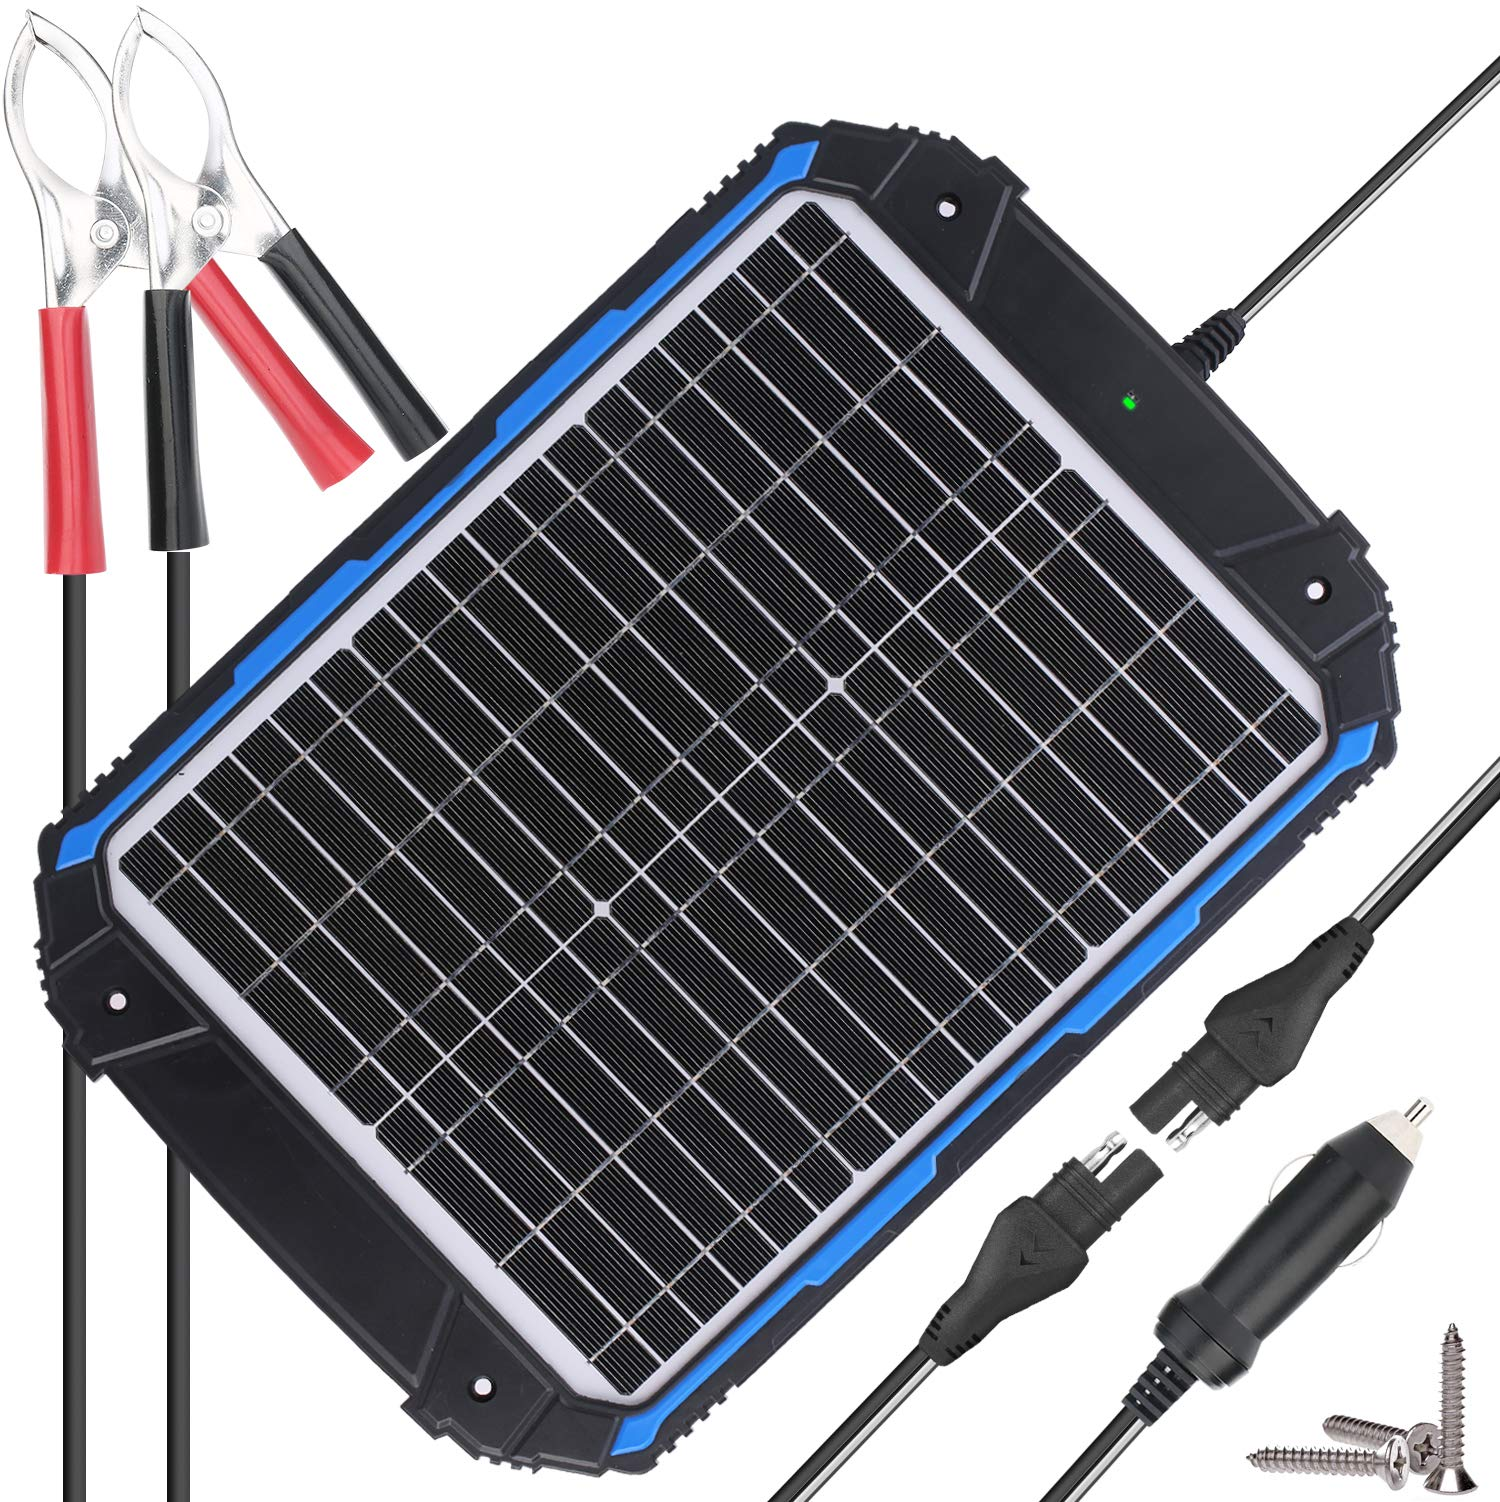 SUNER POWER Upgraded 12V Waterproof Solar Battery Charger & Maintainer Pro - Built-in Intelligent MPPT Charge Controller - 20W Solar Panel Trickle Charging Kit for Car, Marine, Motorcycle, RV, etc